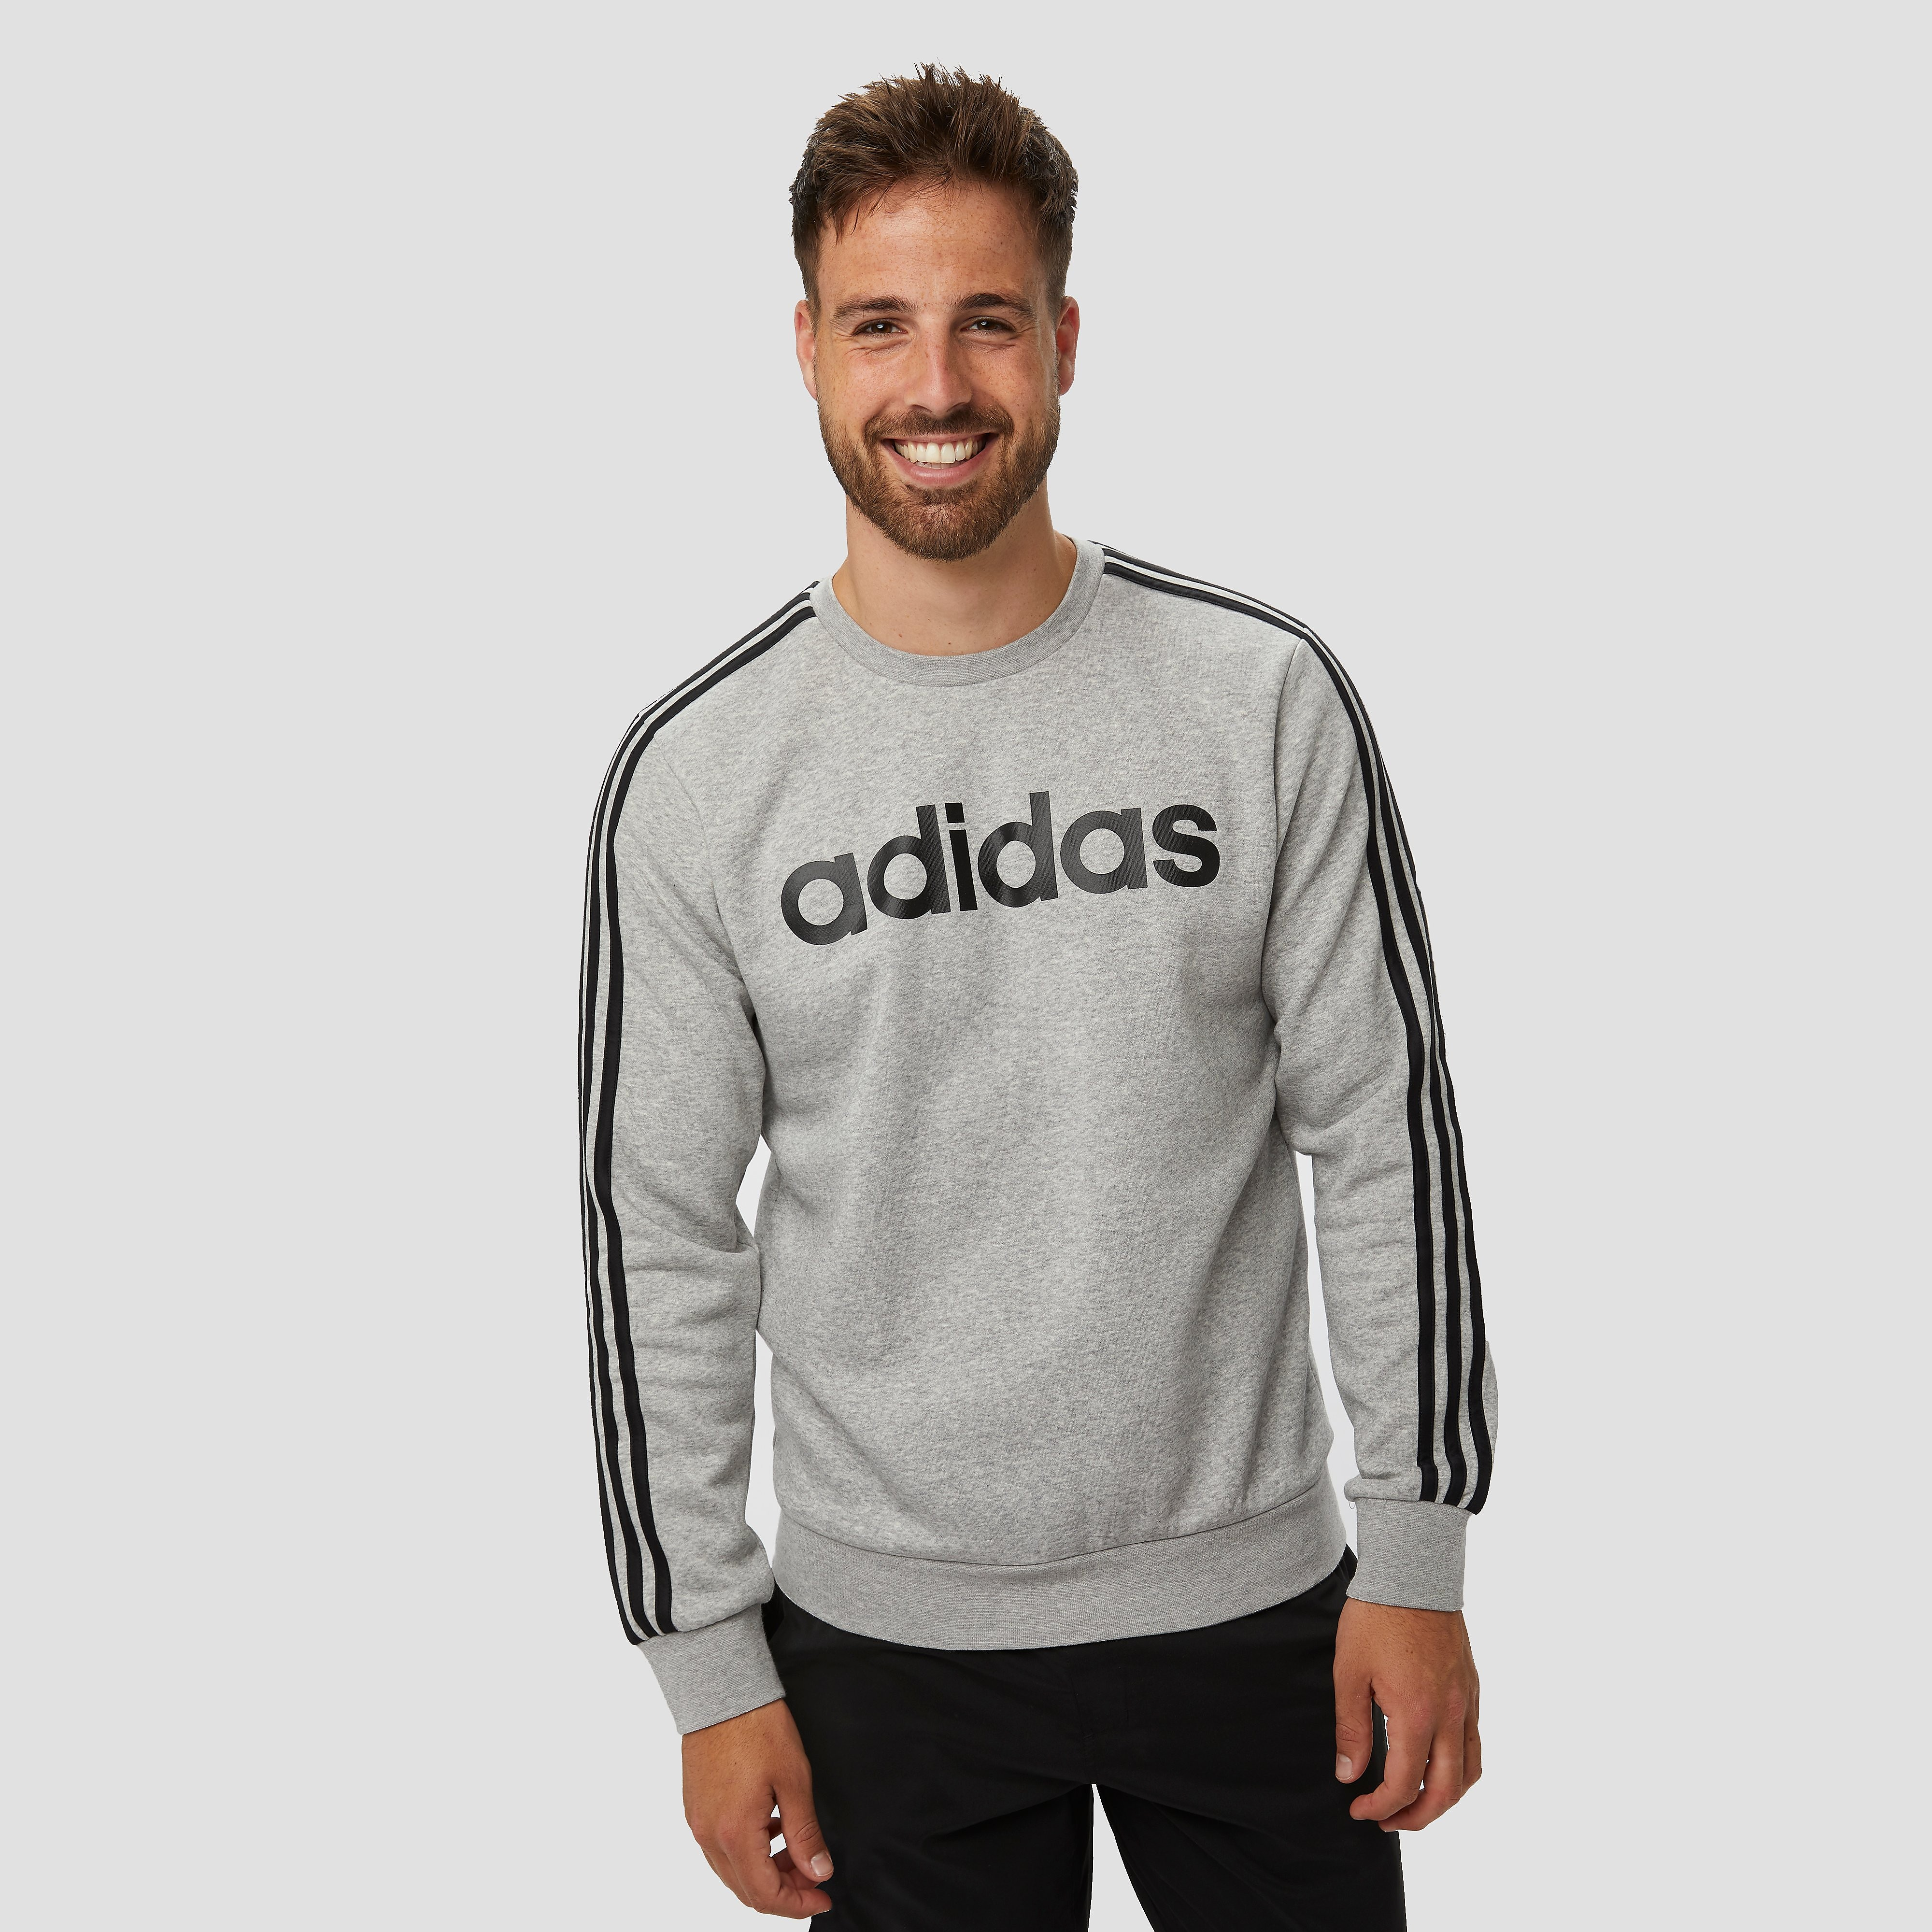 adidas Essentials 3-stripes crew fleece sweater grijs heren Heren | Online  kopen via Skishop4u.nl | Decathlon.nl